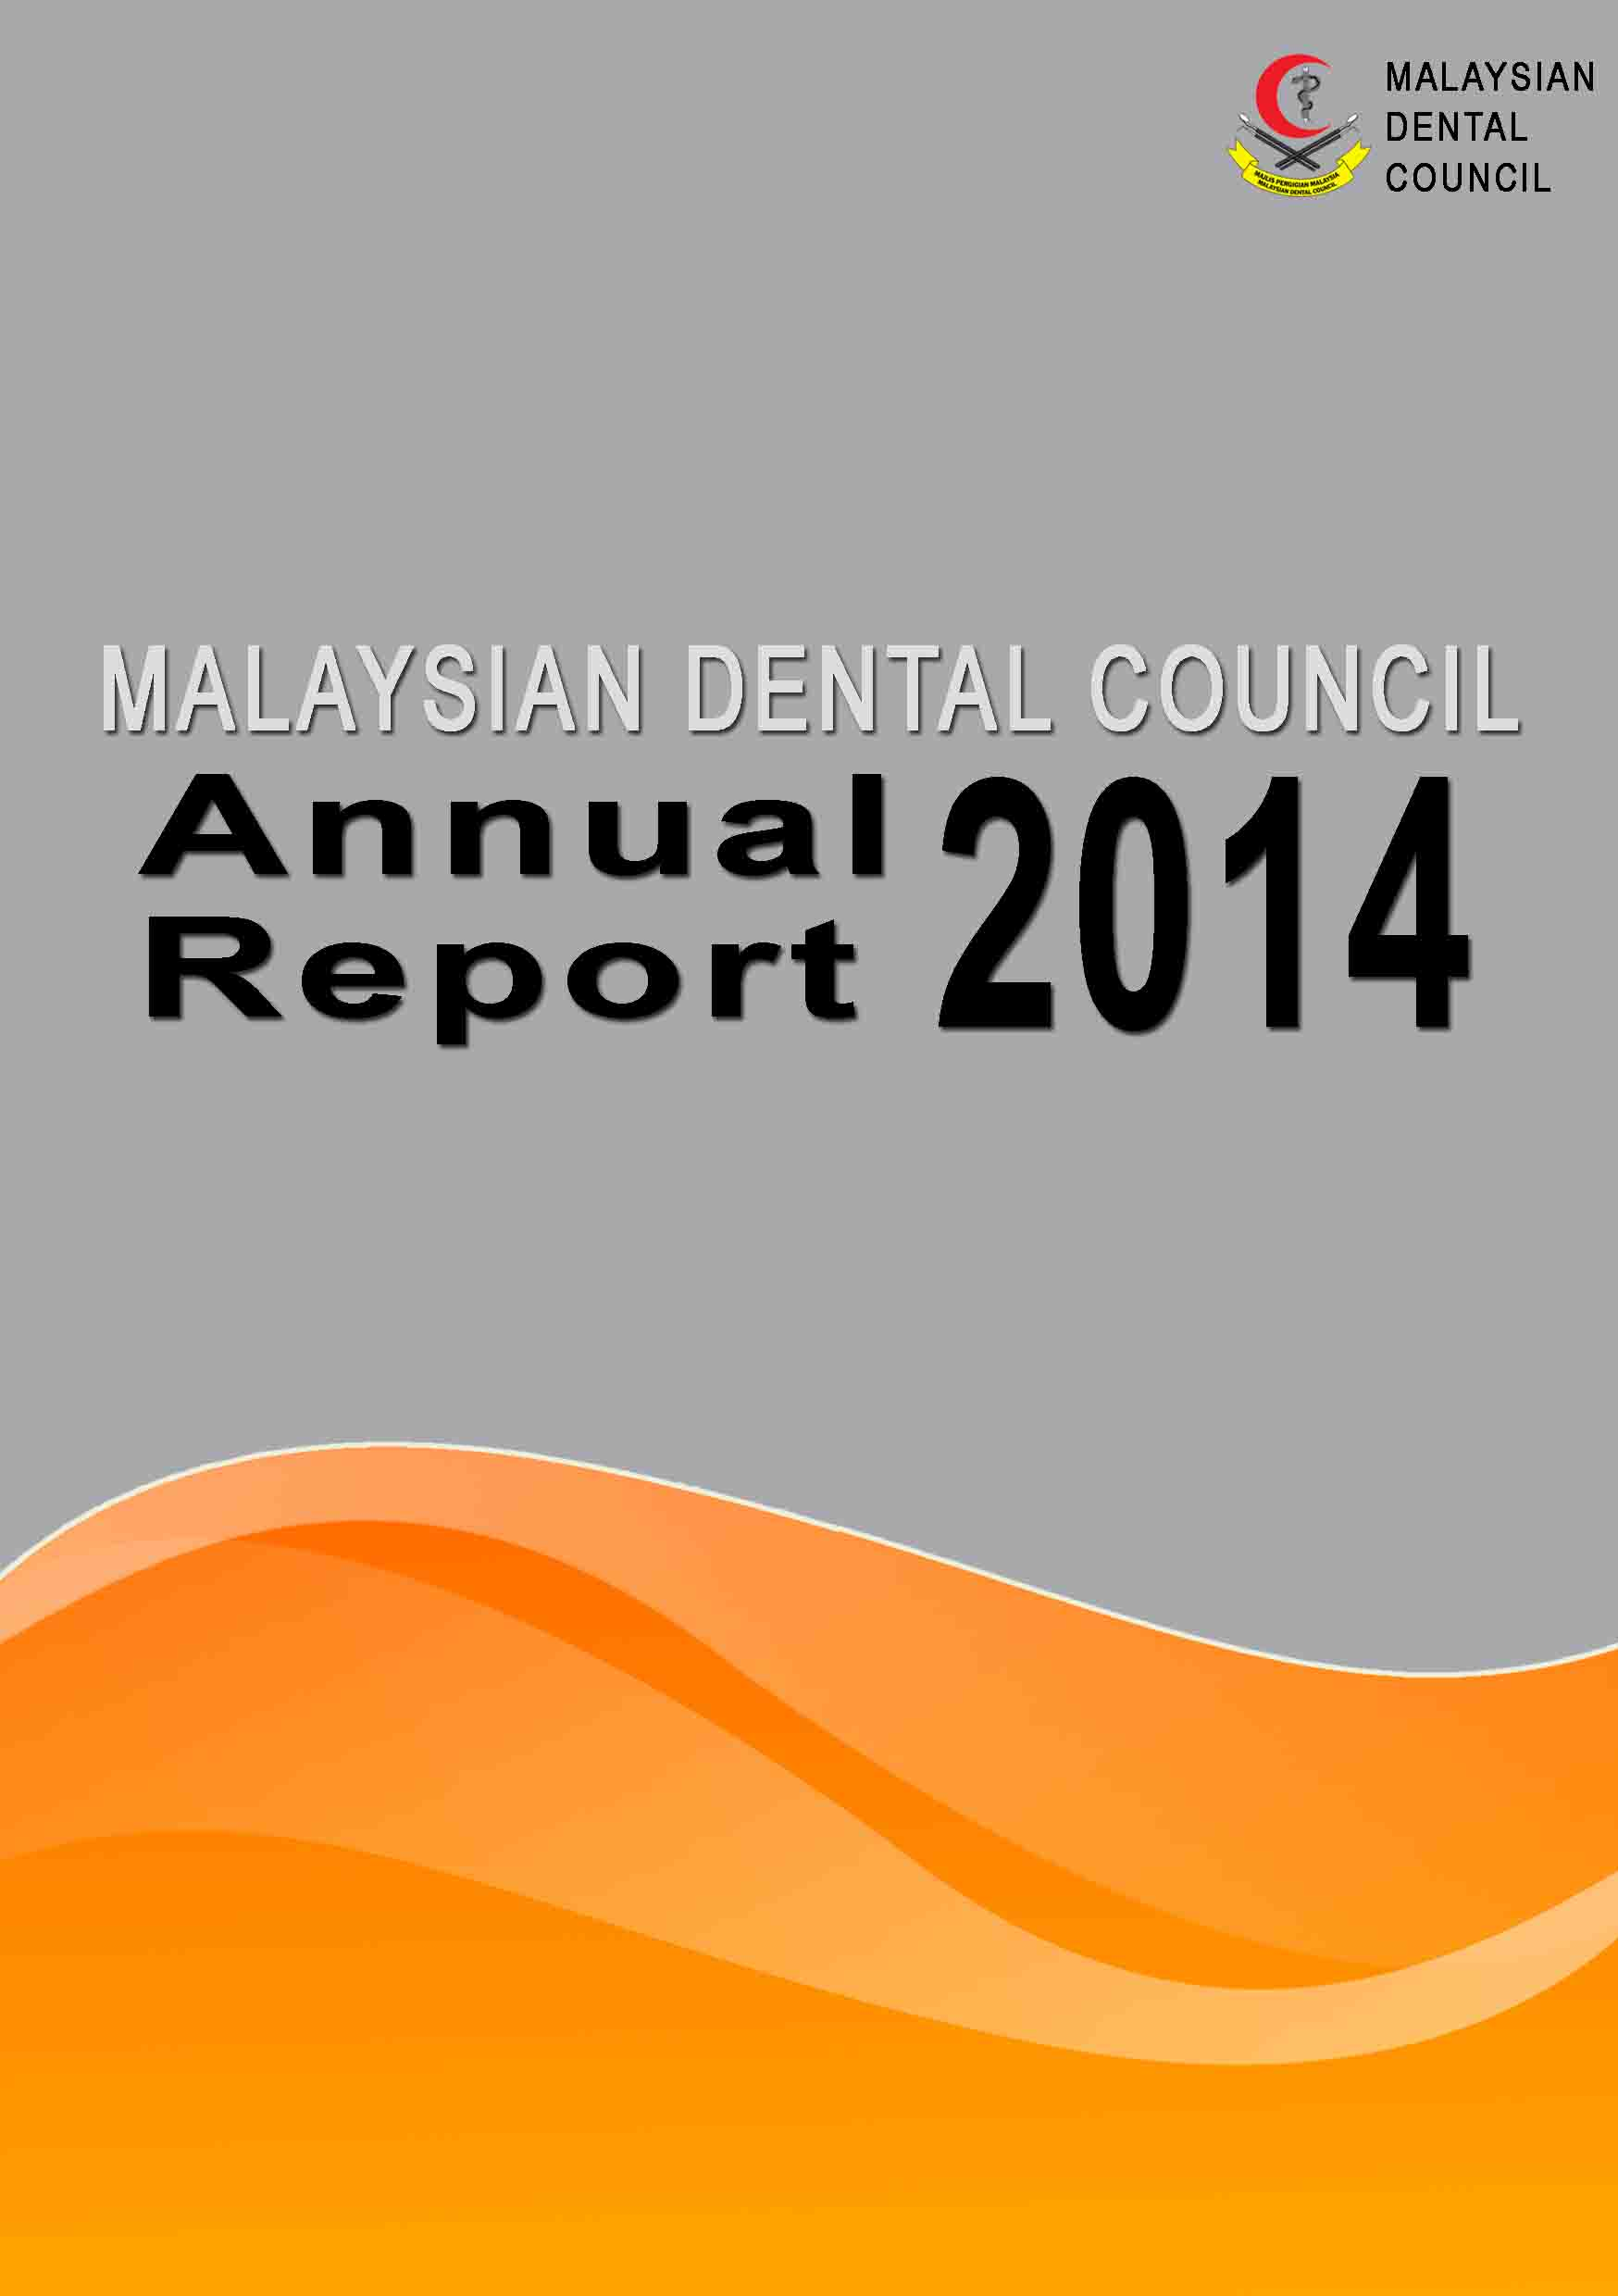 Malaysian Dental Council Annual Report 2014